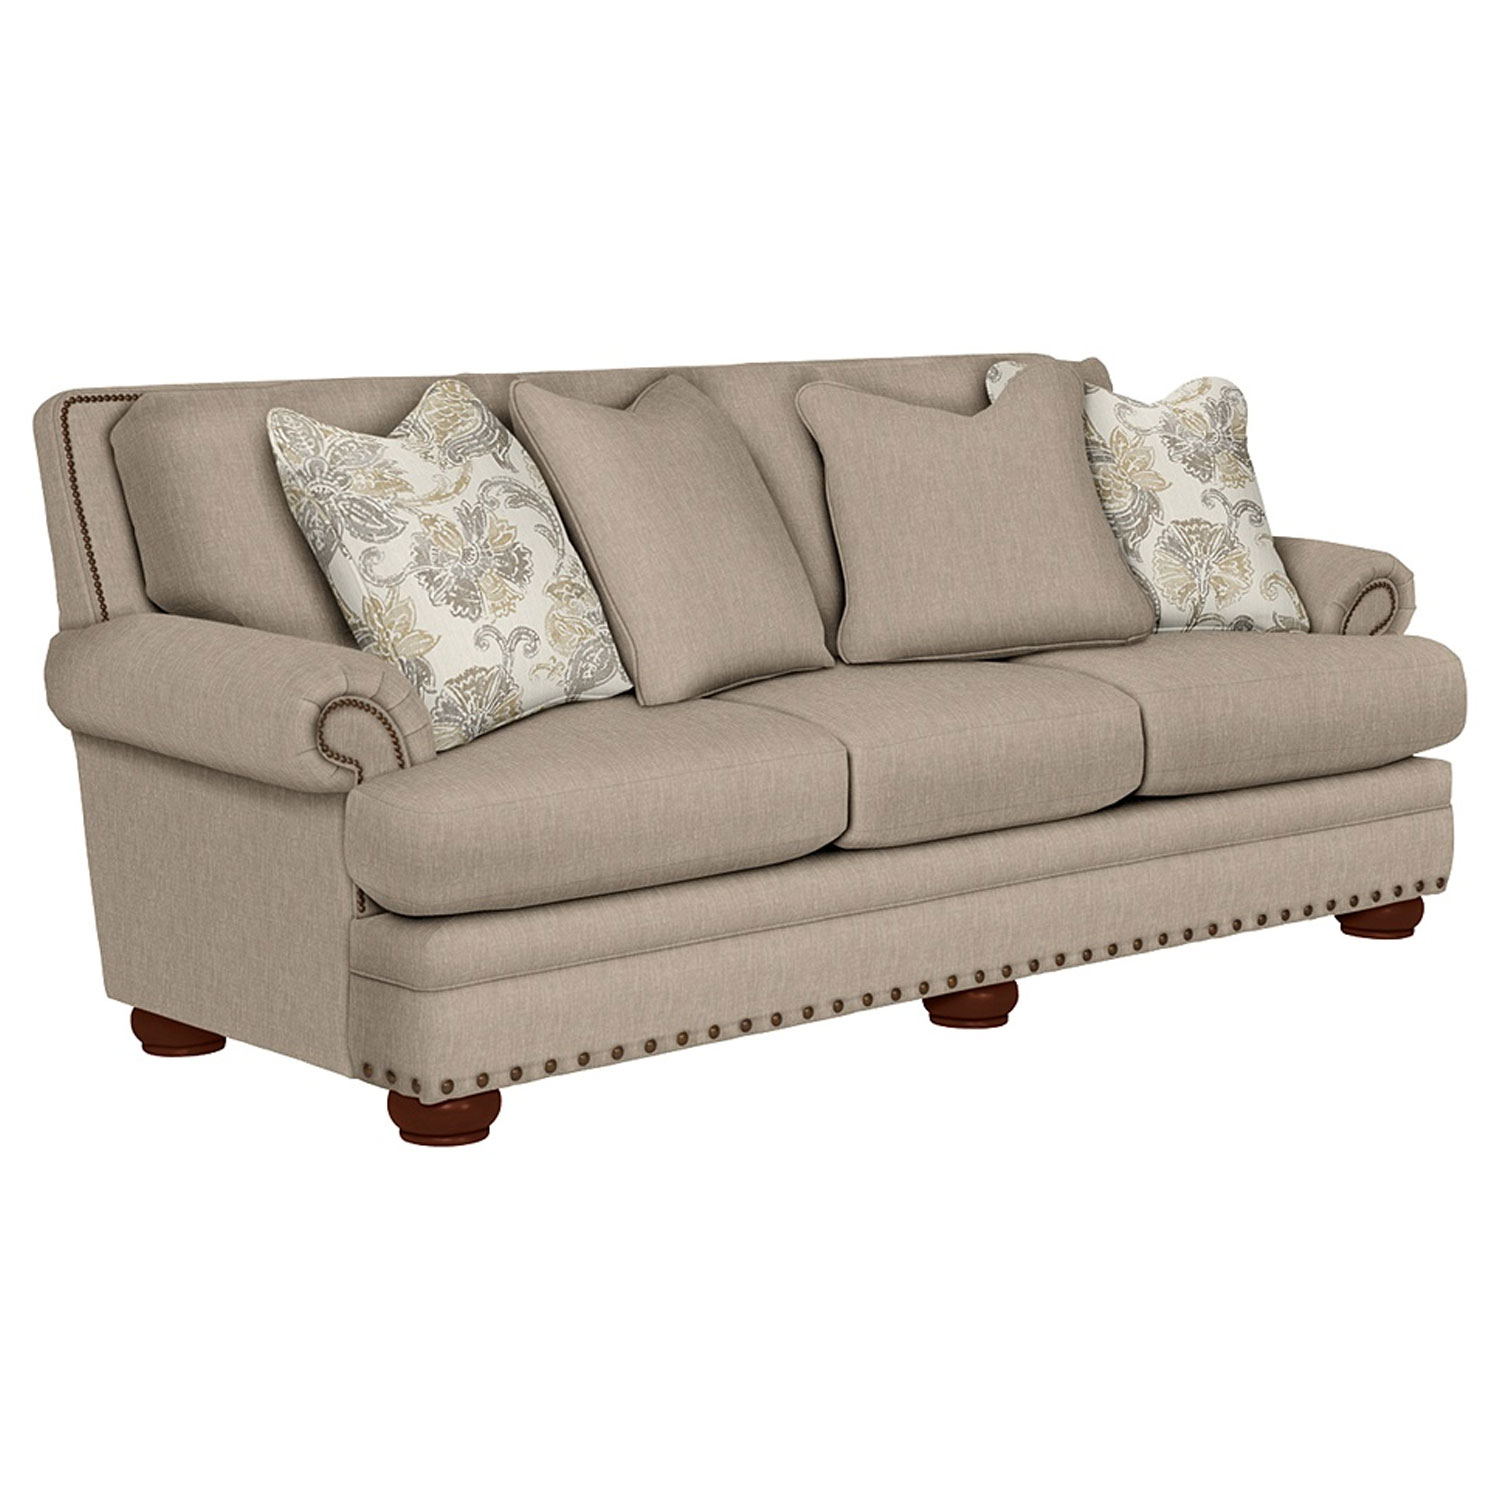 Lazboy 610 657 Brennan Premier Stationary Sofa   Hope Home With Regard To Brennan Sofa Chairs (Image 22 of 25)